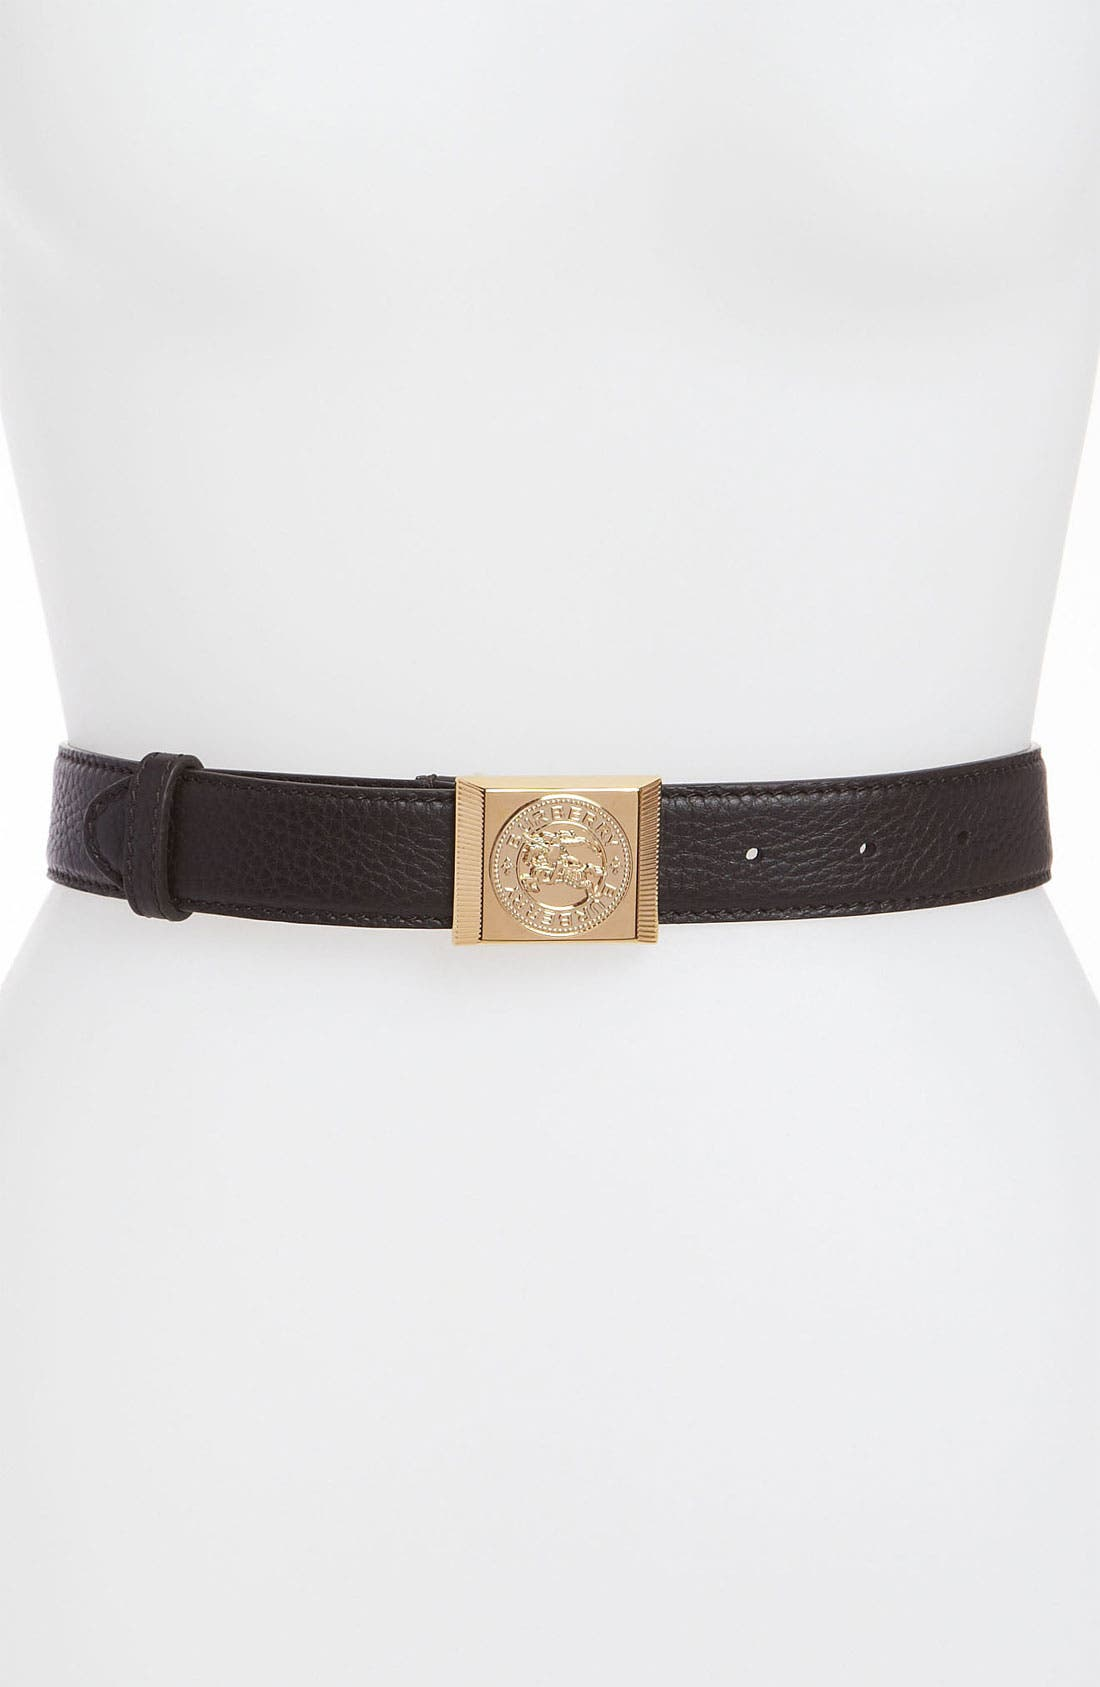 Main Image - Burberry 'Brimley' Leather Belt